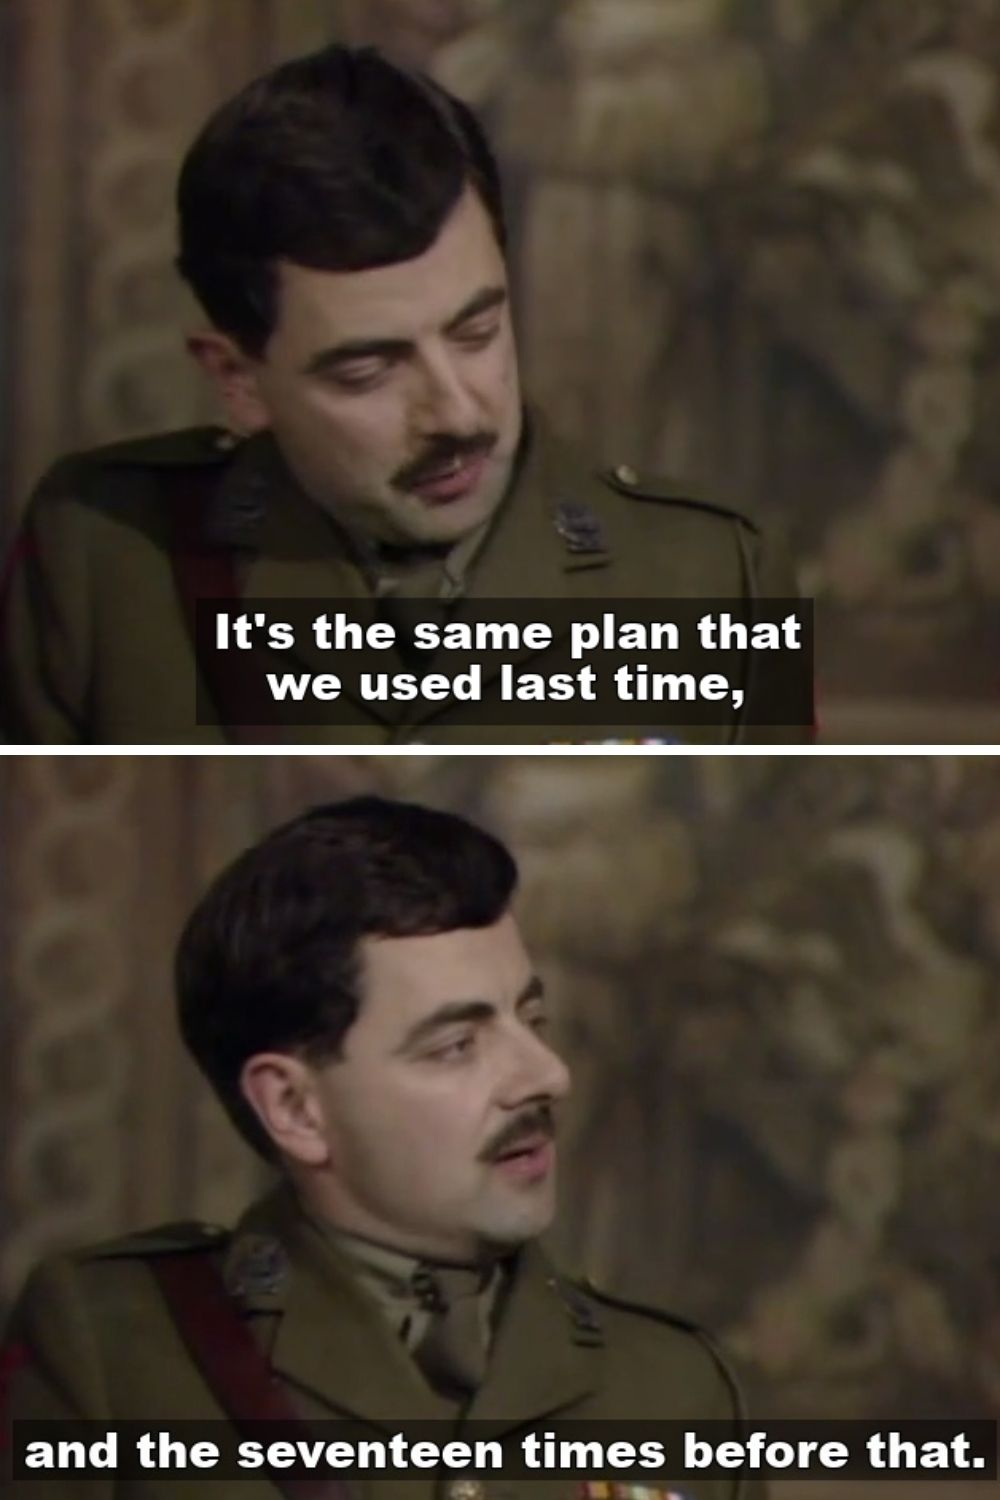 The same plan we used last time - Blackadder Quotes